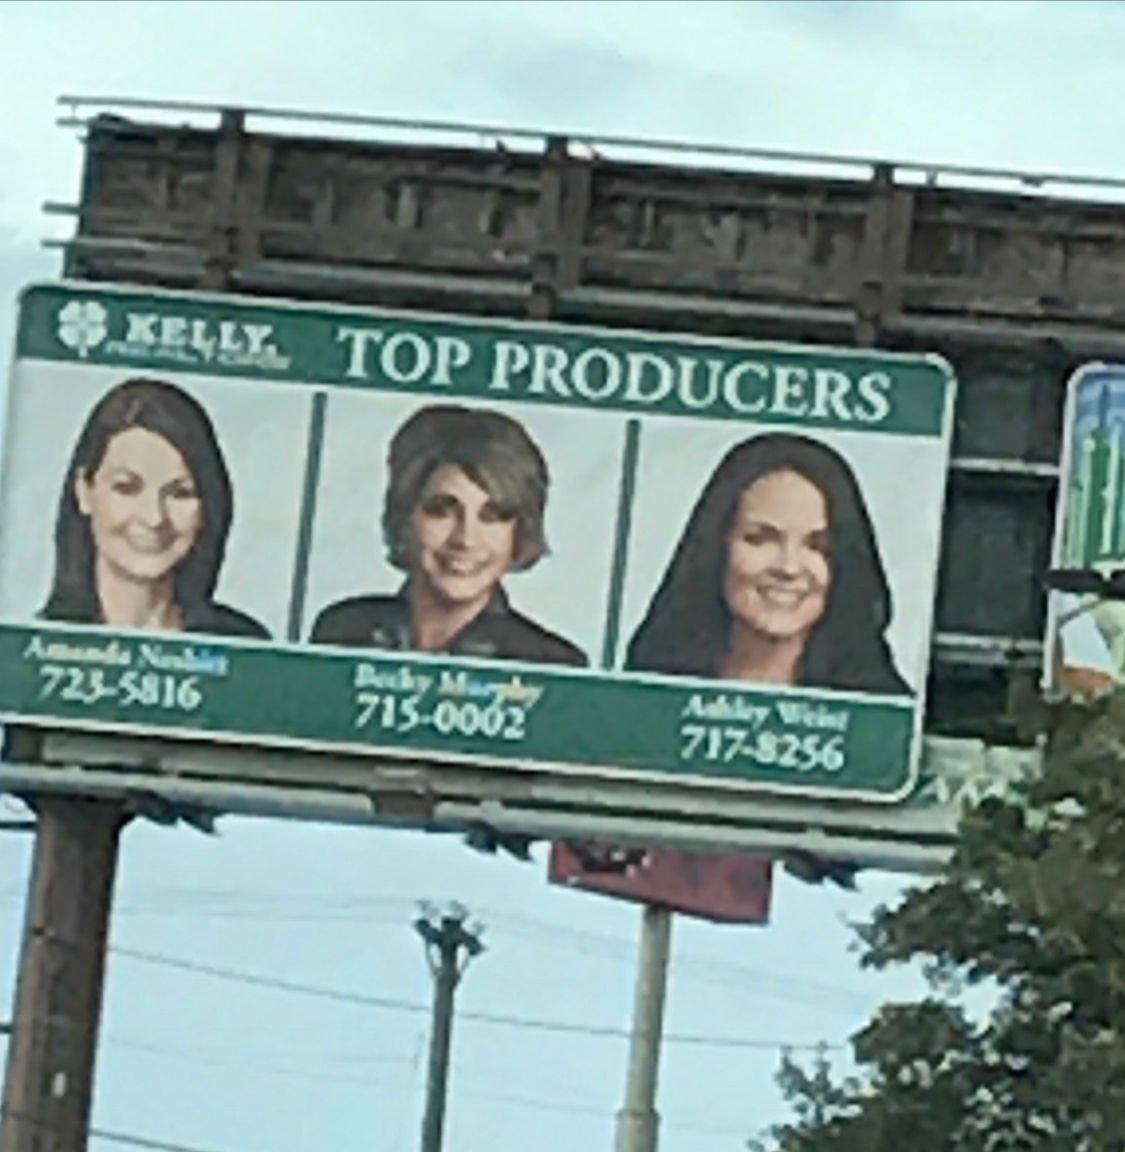 Owner of Sign This Custom Signs and Design featured (center) as a Kelly, Realtors Top Producer!